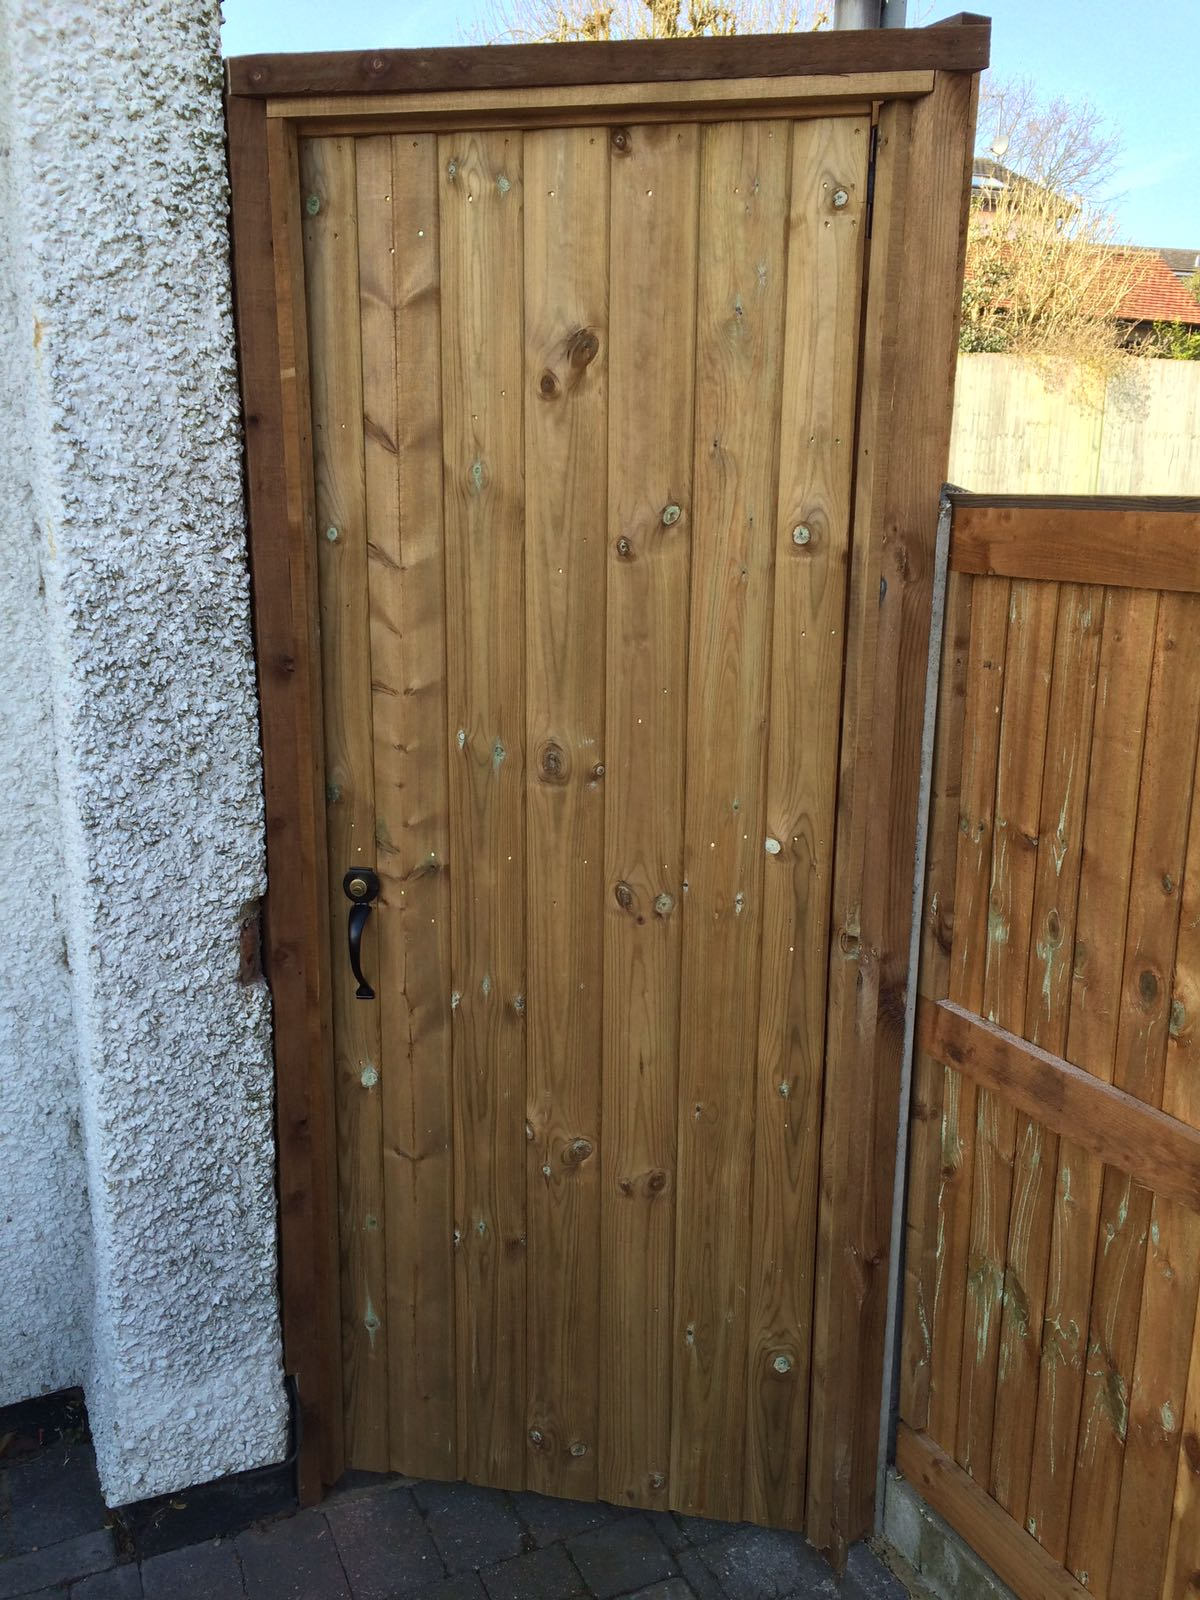 Ledged & braced shiplap gate